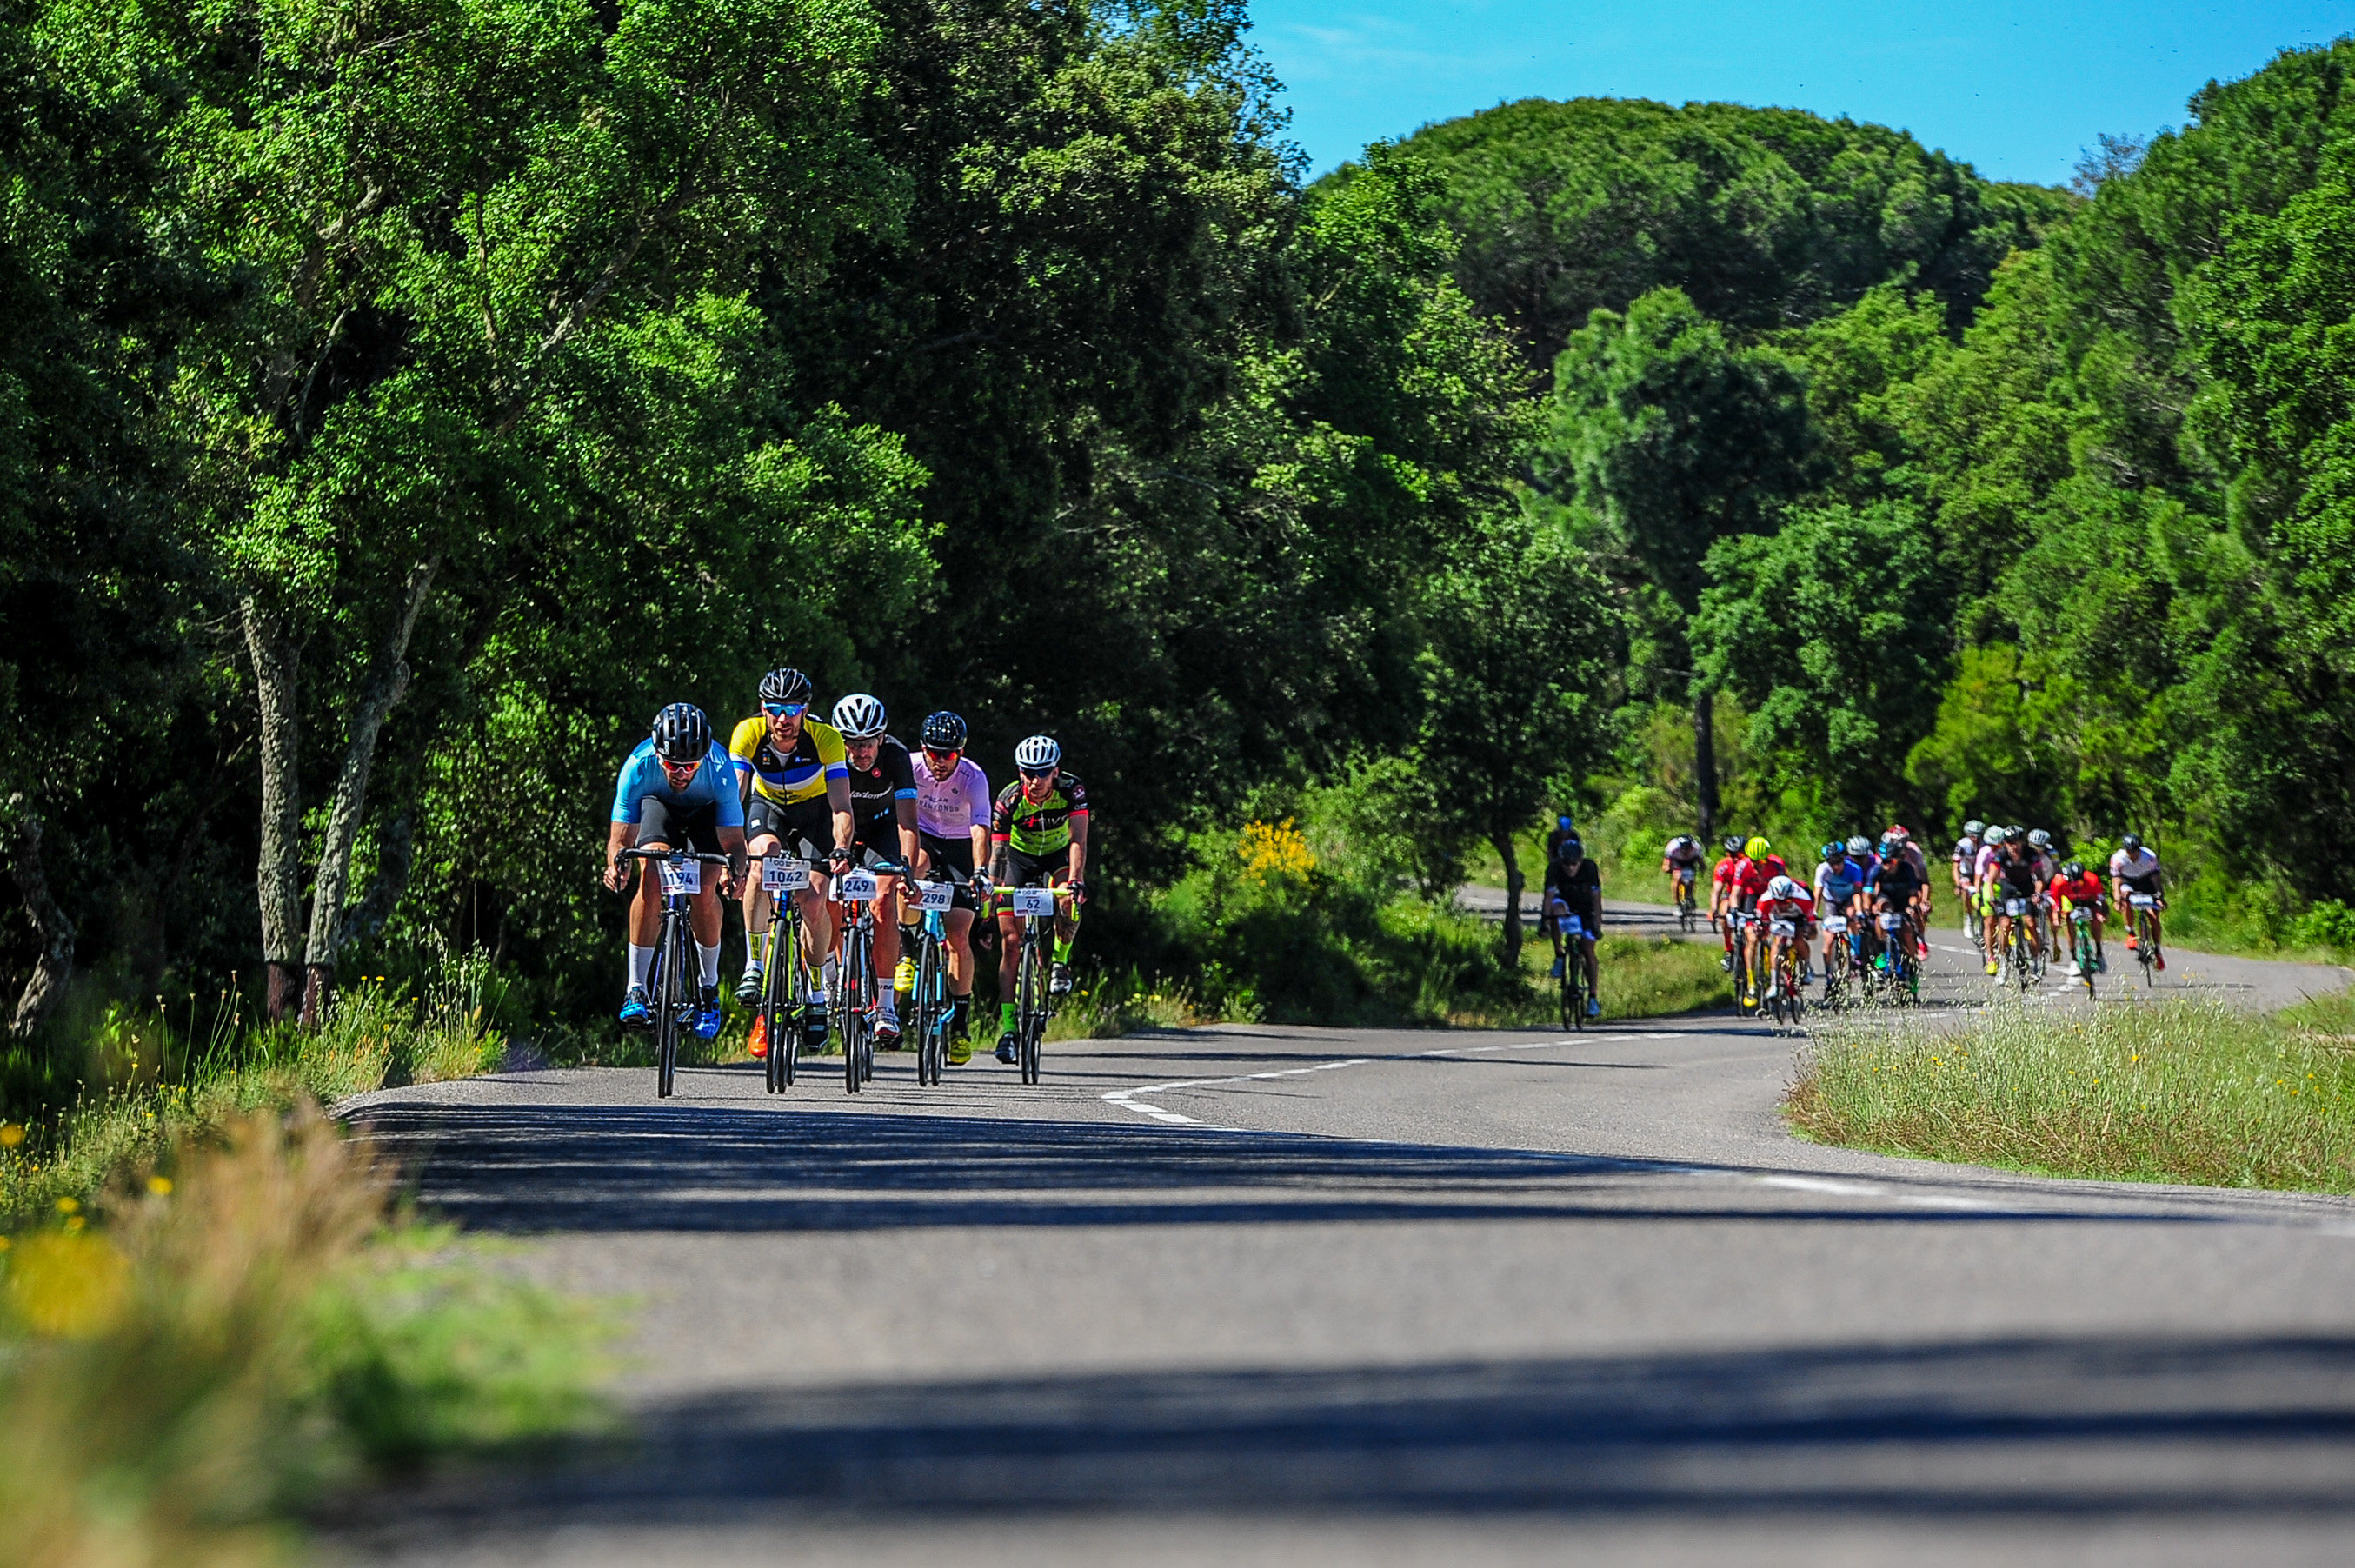 A two day journey for the Sea Otter Europe International Cycling Tour